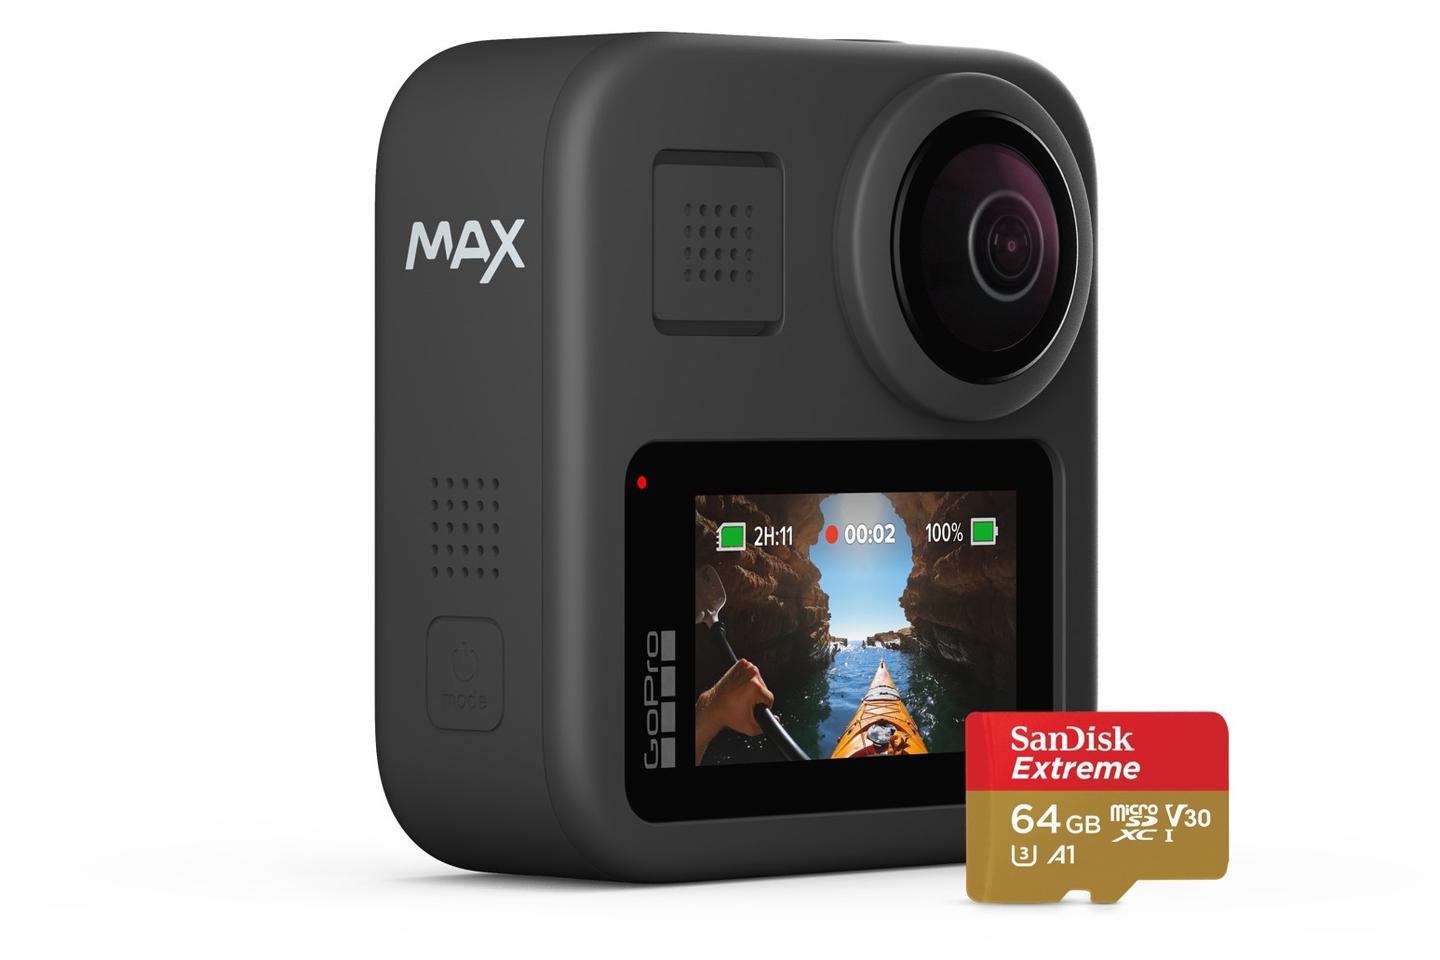 The GoPro Max will set you back $500